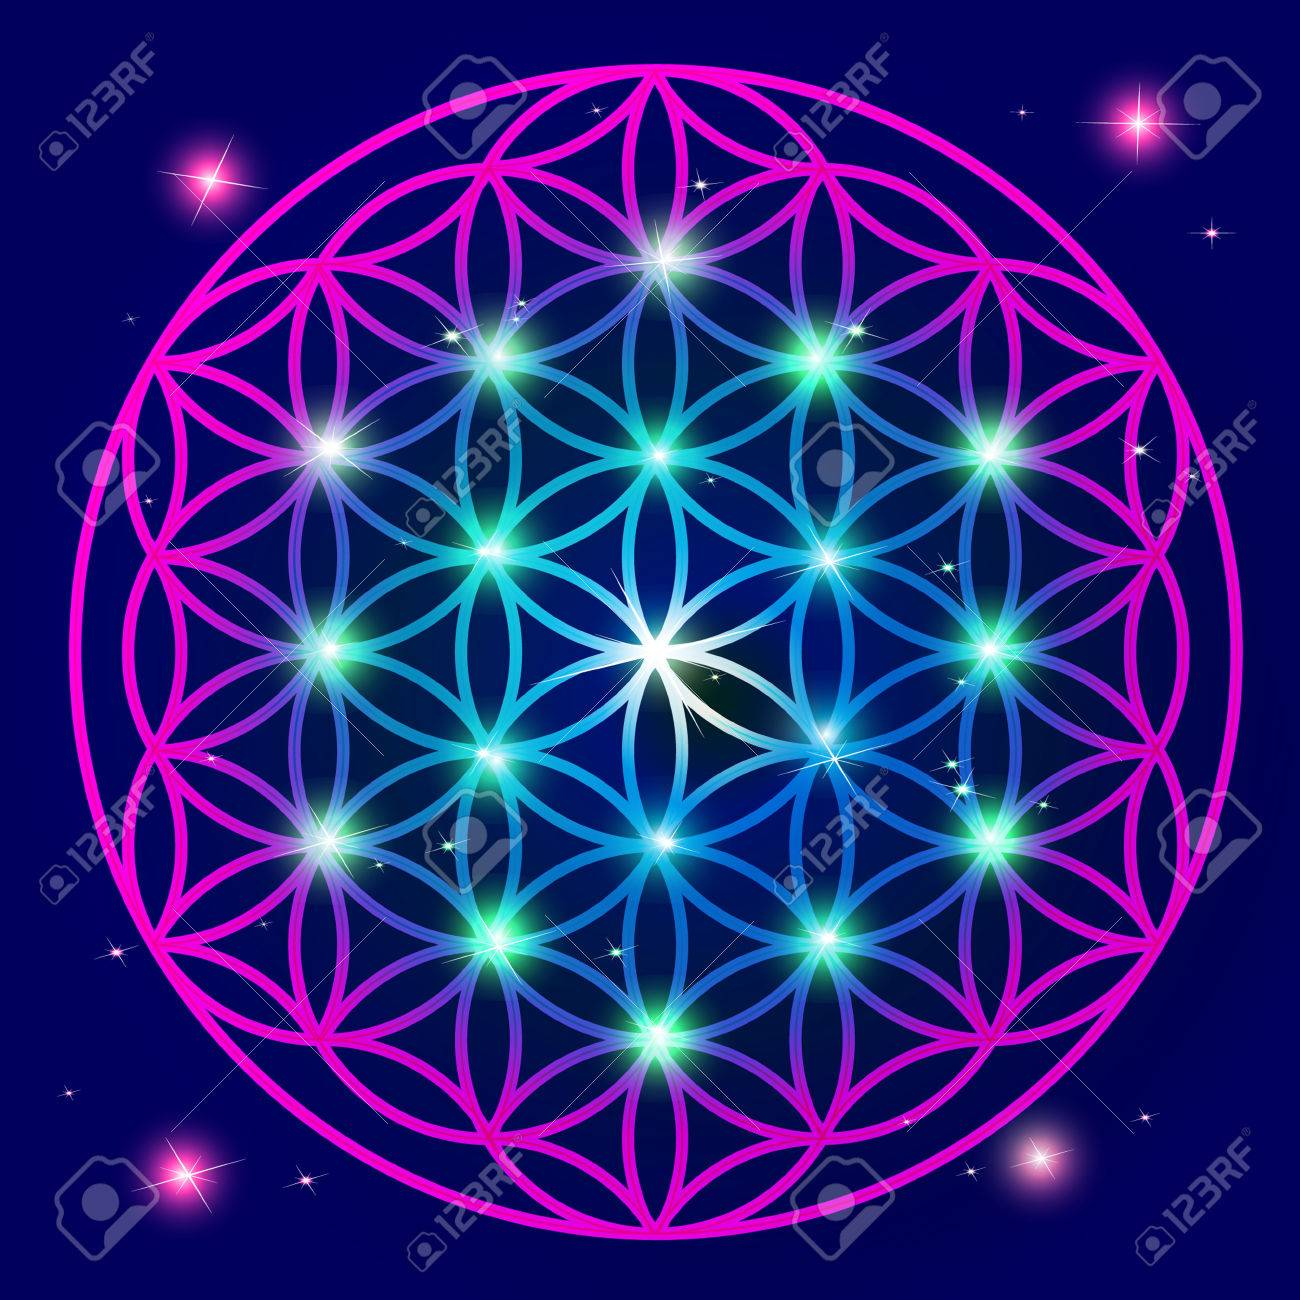 Flower Of Life Mandala ornement Banque d'images - 56300815